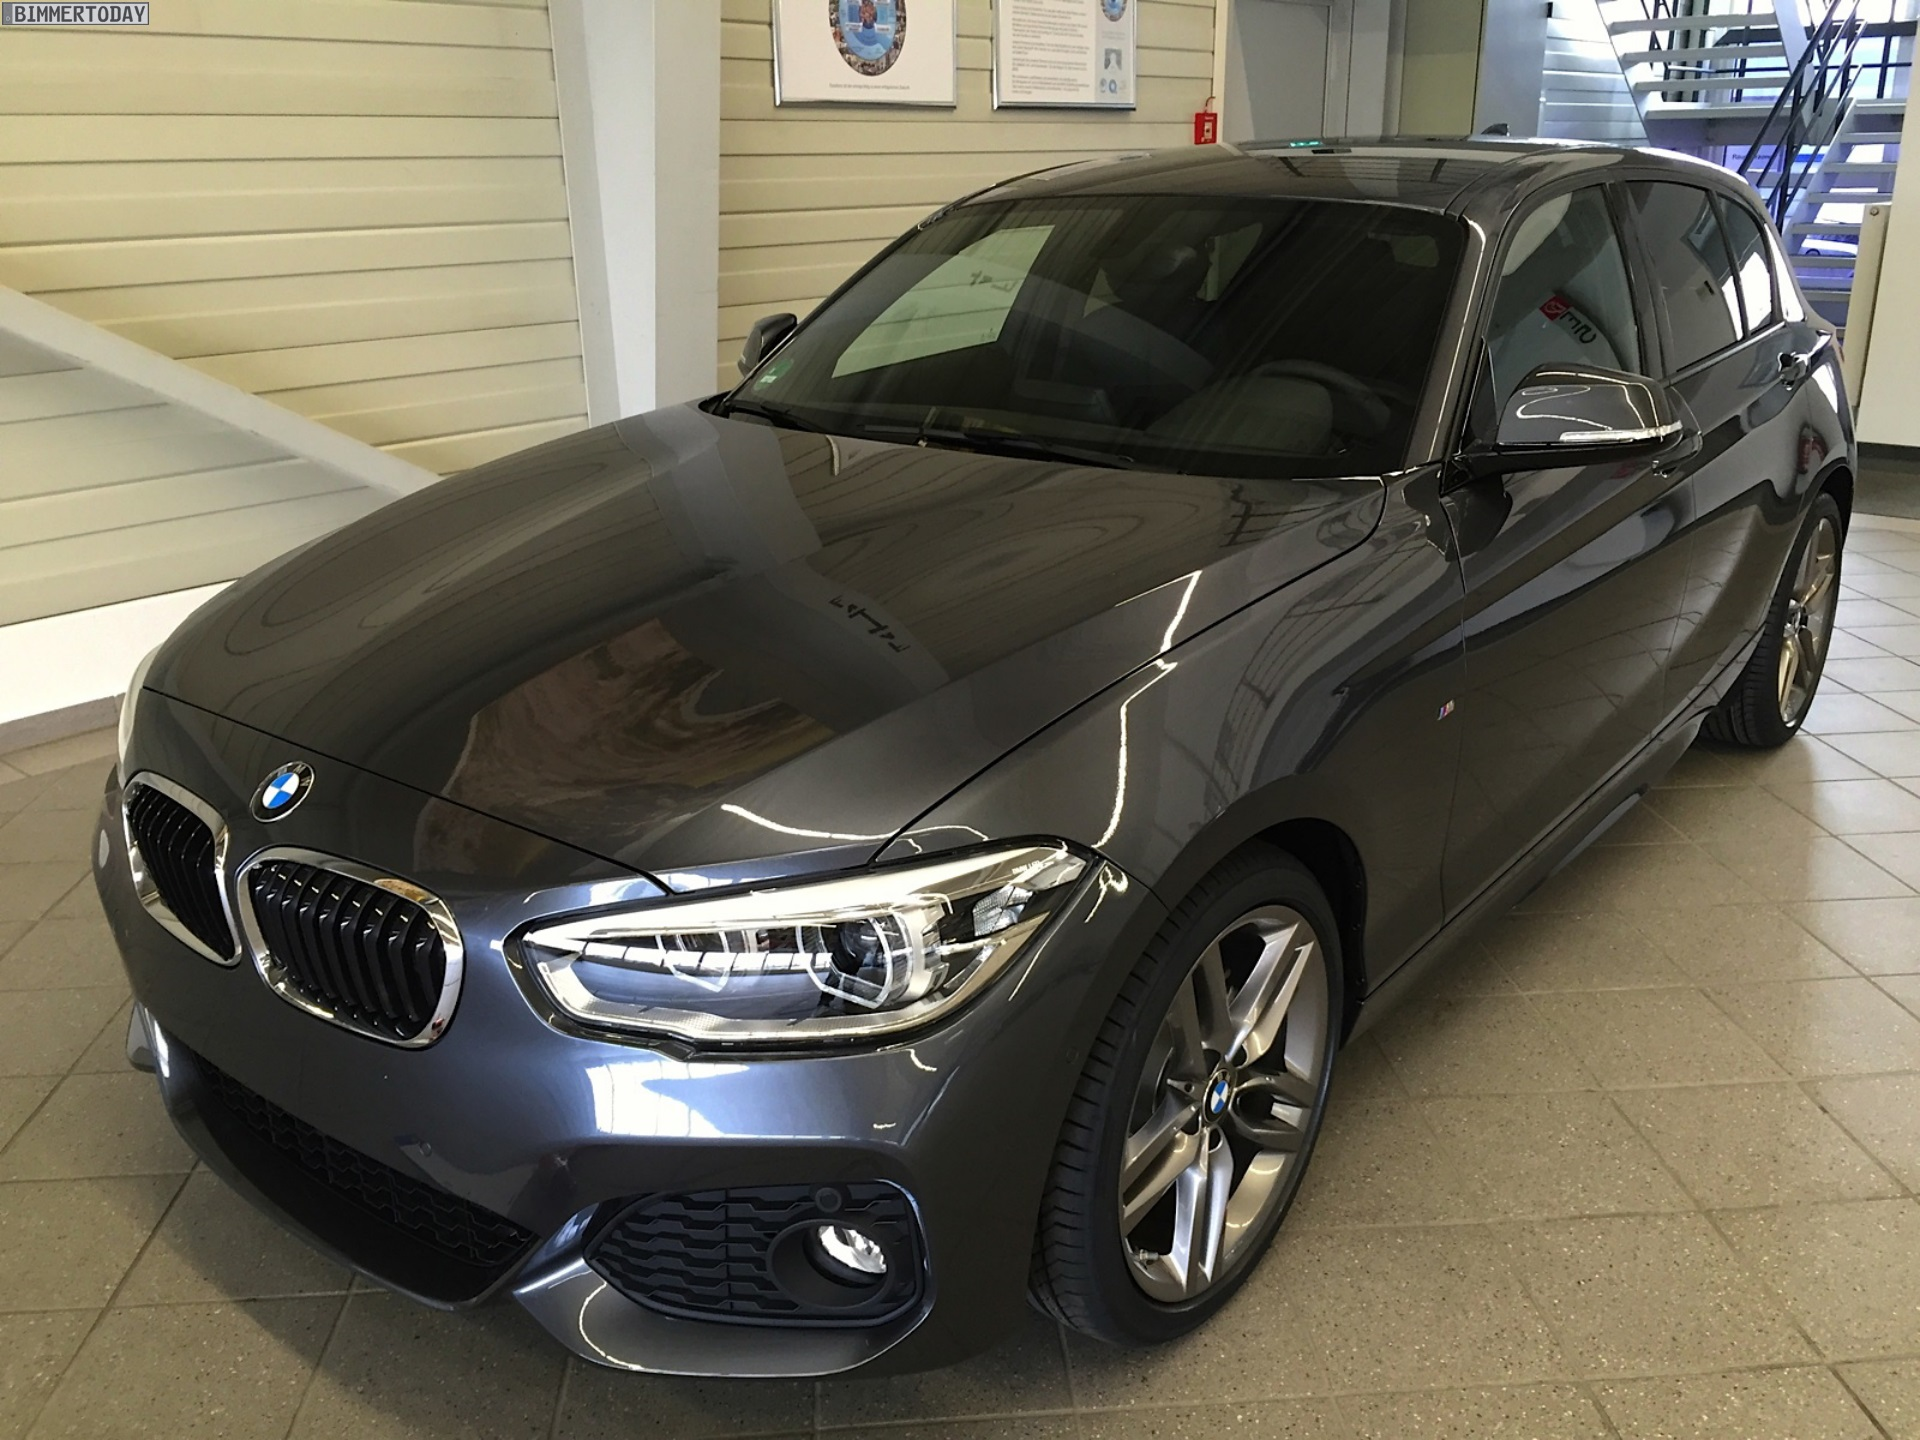 bmw 1er facelift 2015 f20 lci mit m sportpaket in mineralgrau. Black Bedroom Furniture Sets. Home Design Ideas